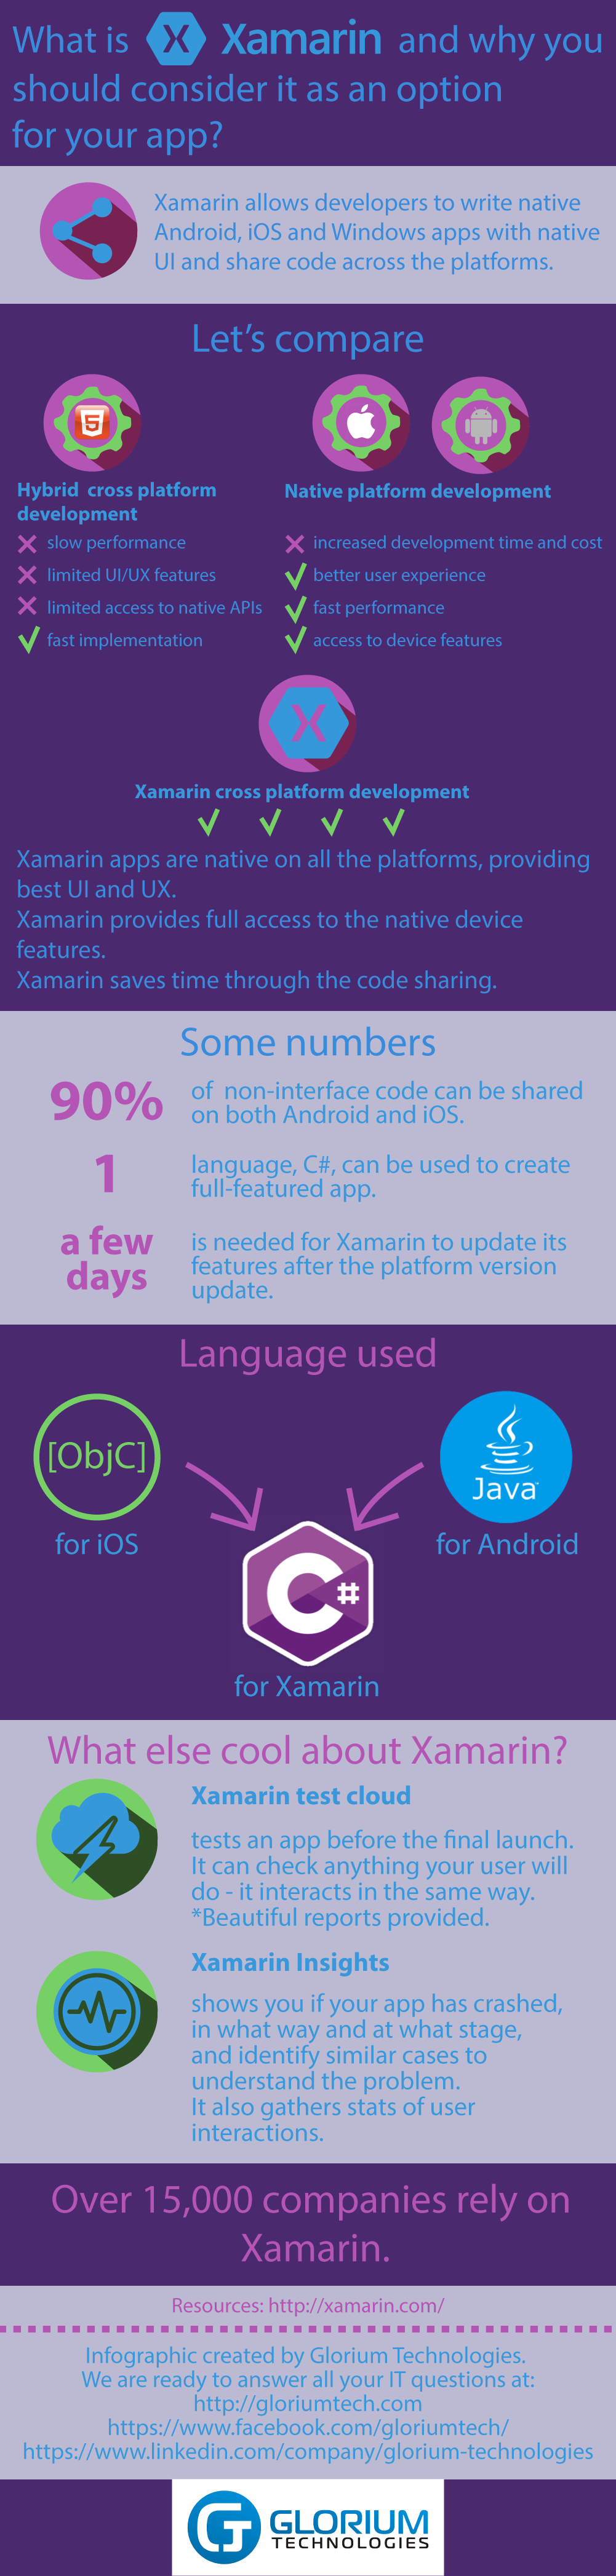 What is Xamarin and why you shoud consider it as an option for your App Development